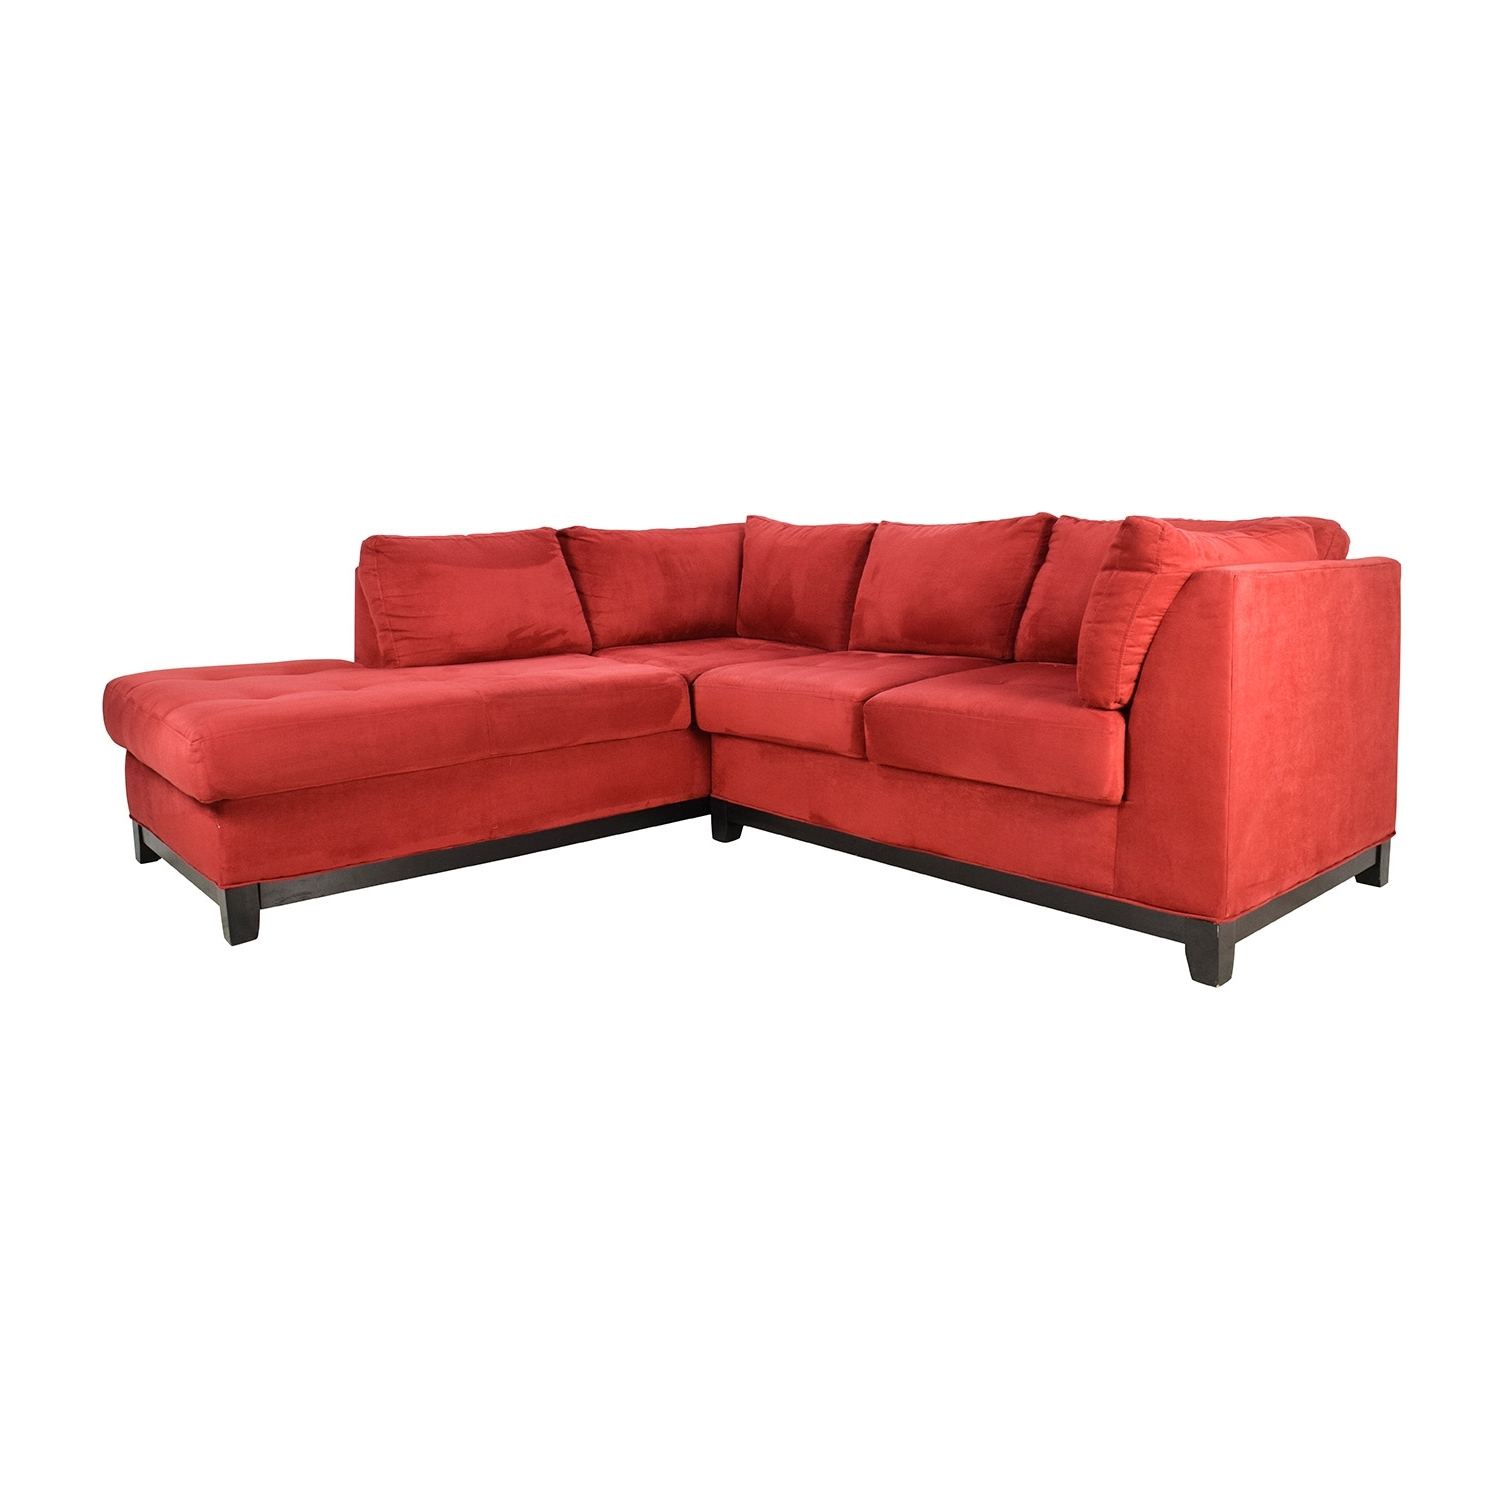 [%67% Off – Raymour And Flanigan Raymour & Flanigan Zella Red Within Best And Newest Sectional Sofas At Raymour And Flanigan|Sectional Sofas At Raymour And Flanigan Inside 2019 67% Off – Raymour And Flanigan Raymour & Flanigan Zella Red|Famous Sectional Sofas At Raymour And Flanigan For 67% Off – Raymour And Flanigan Raymour & Flanigan Zella Red|Preferred 67% Off – Raymour And Flanigan Raymour & Flanigan Zella Red For Sectional Sofas At Raymour And Flanigan%] (View 5 of 20)